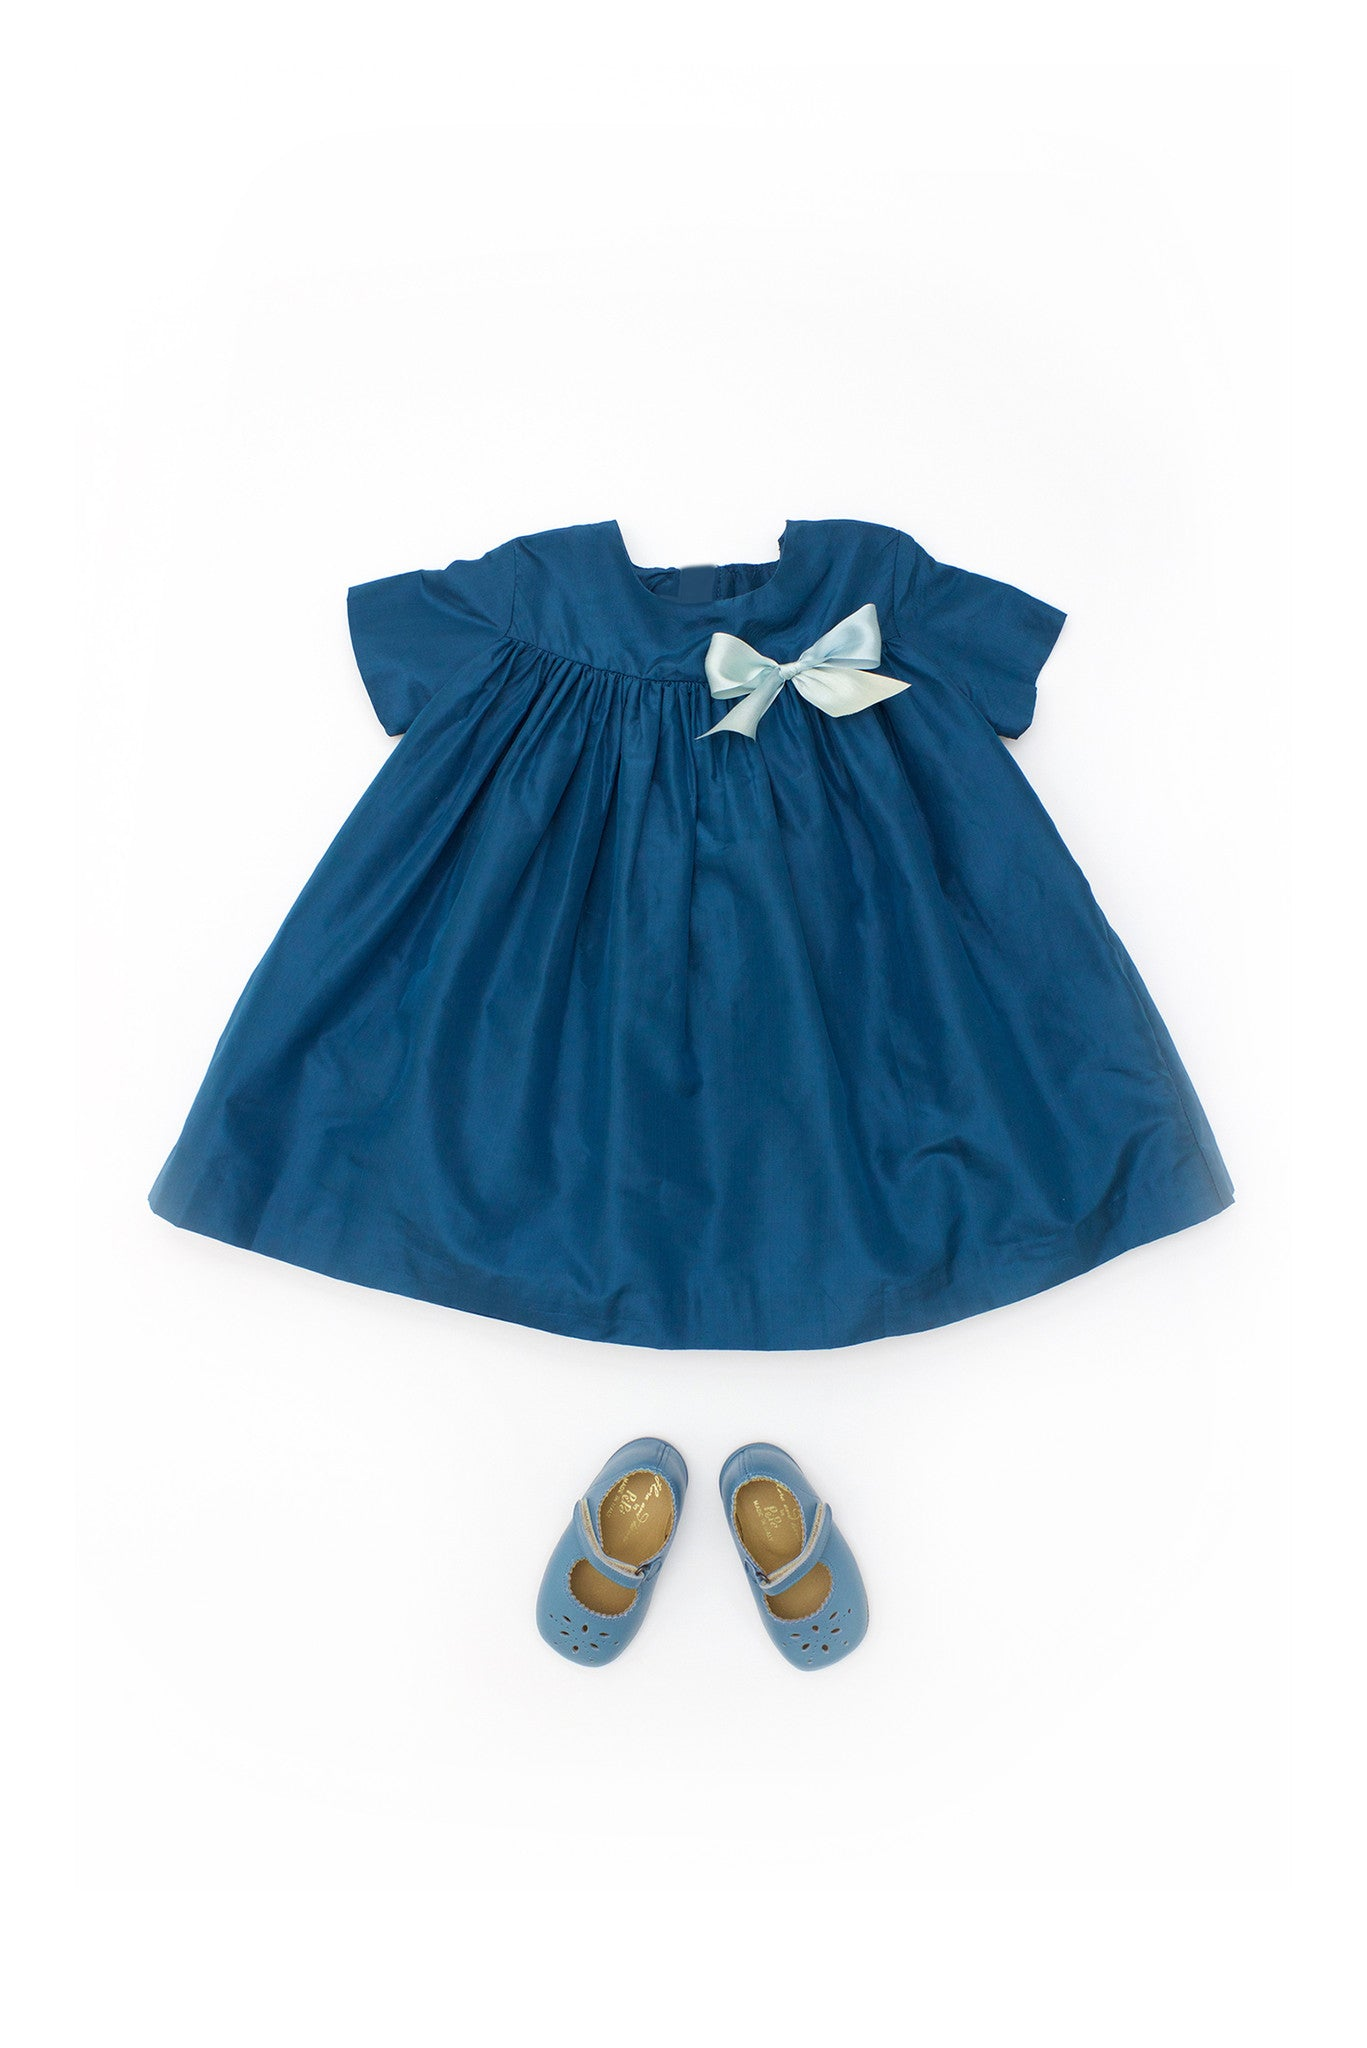 Baby Teal Puff Party Dress